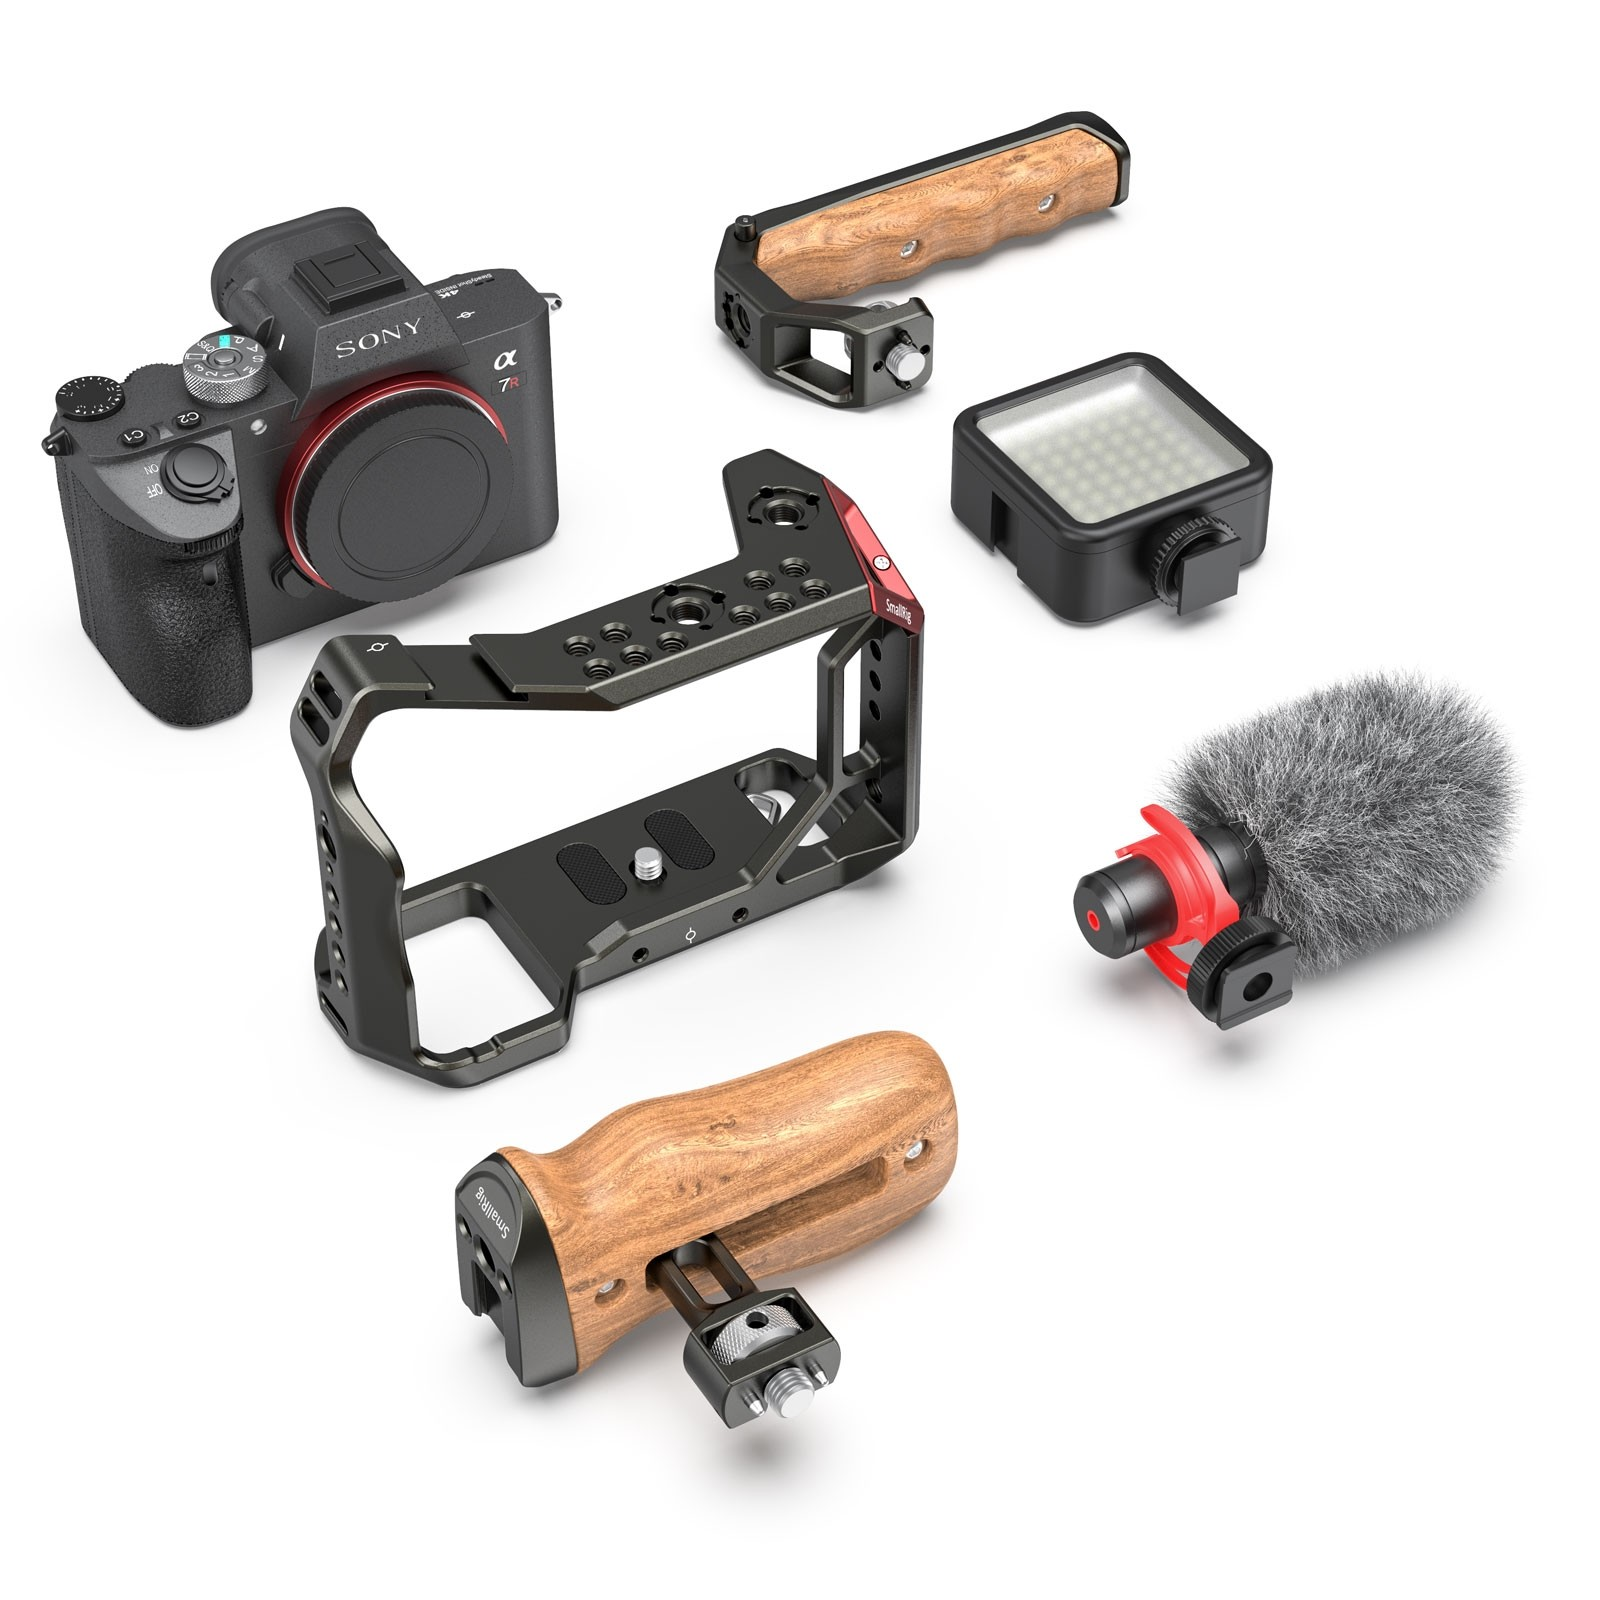 SmallRig Universal Wooden Side Handle for RoninS/Zhiyun Crane Series Handheld Gimbal 2222